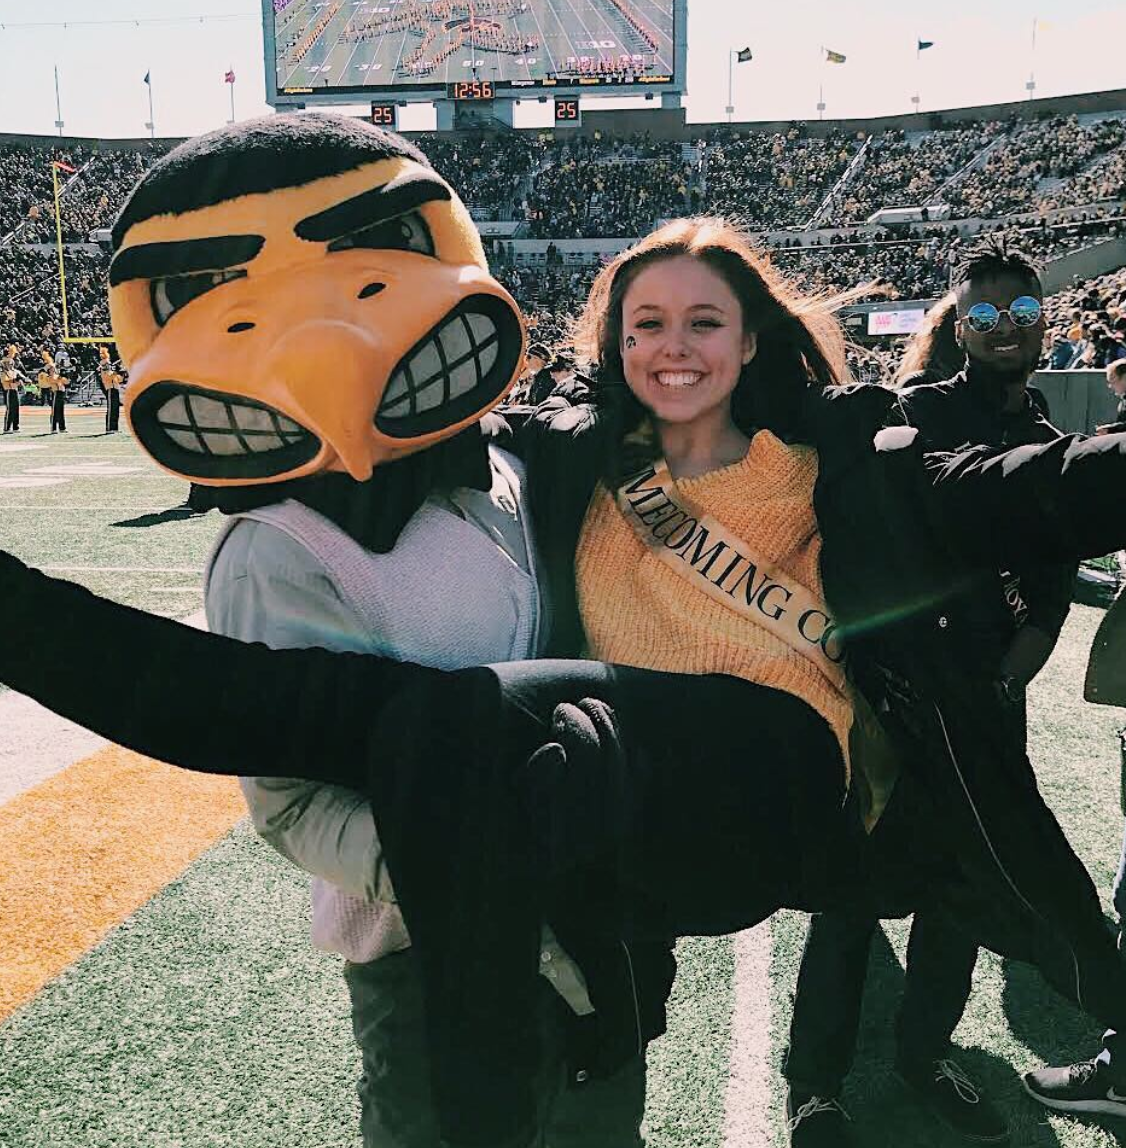 katie_cabel_homecoming_court_iowa.png